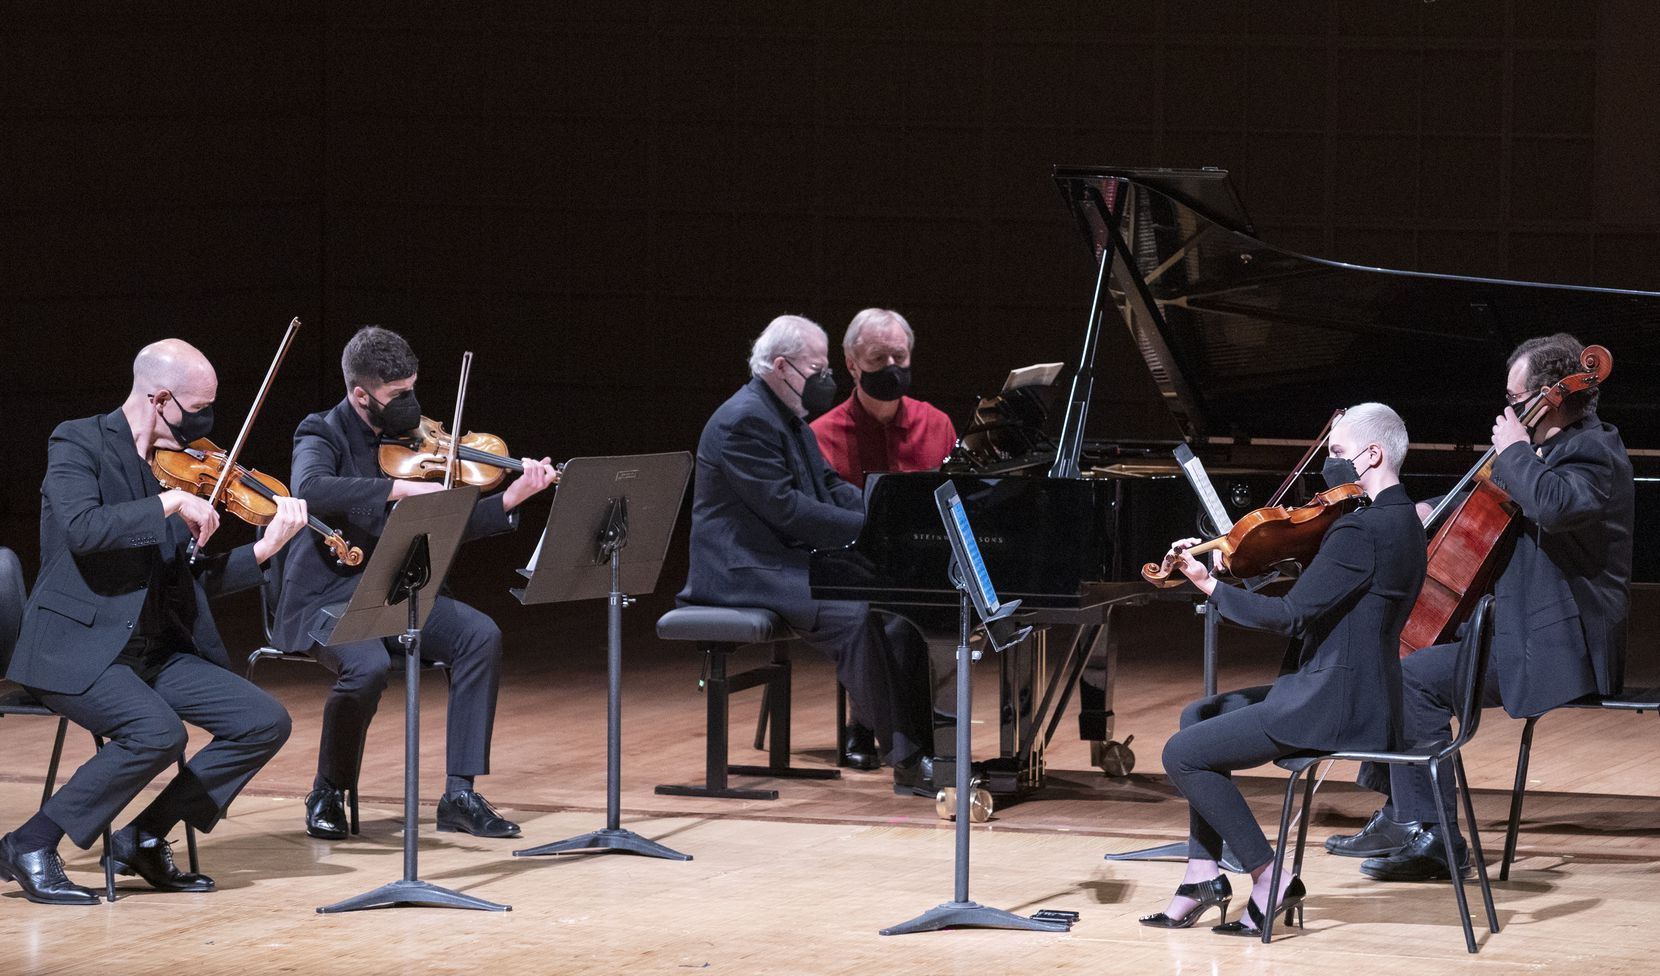 Pianist and Dallas Symphony Orchestra artist in residence Emanuel Ax, with musicians from the Dallas Symphony Orchestra, perform Dvorak Piano Quintet in A Major on April 13 at the Morton H. Meyerson Symphony Center in downtown Dallas.